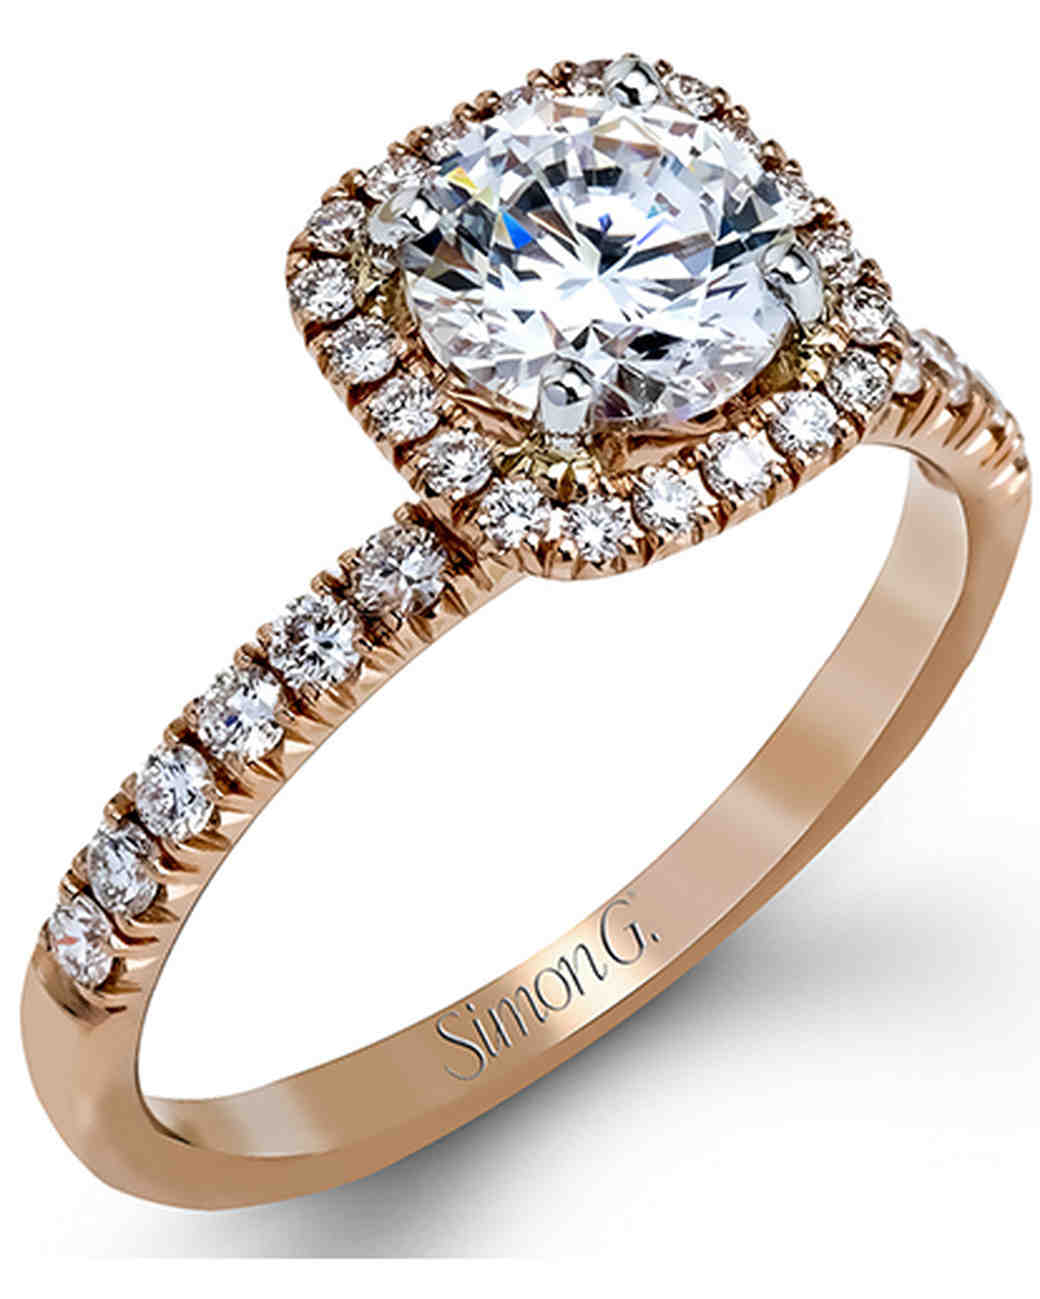 Simon G. Rose Gold Engagement Ring Featuring Round White Diamonds